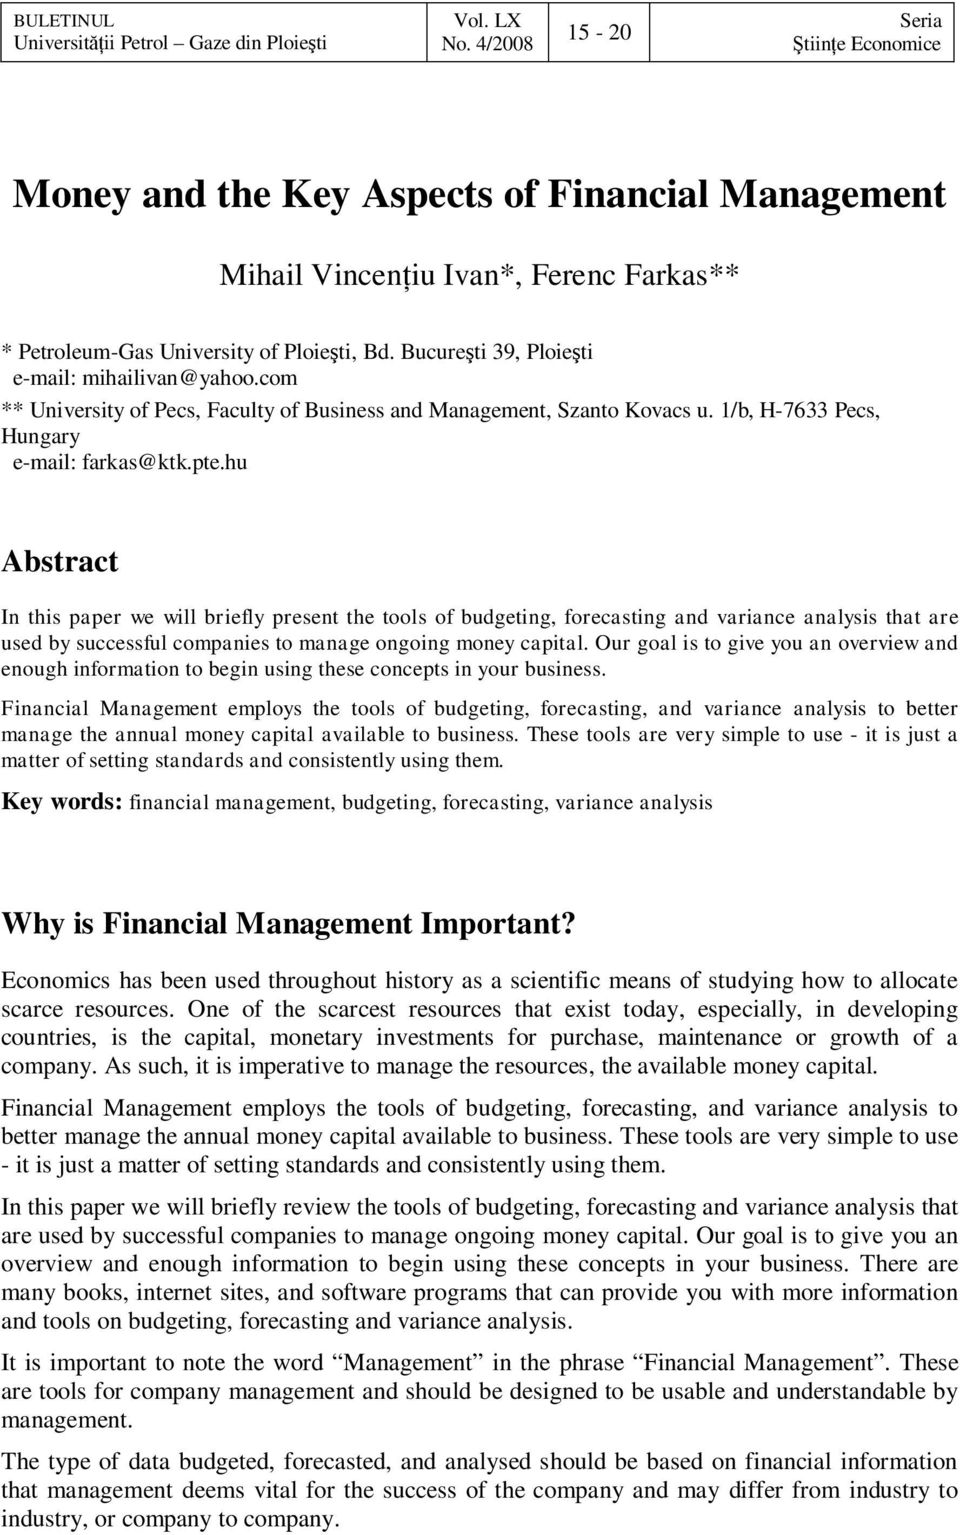 Money and the Key Aspects of Financial Management - PDF